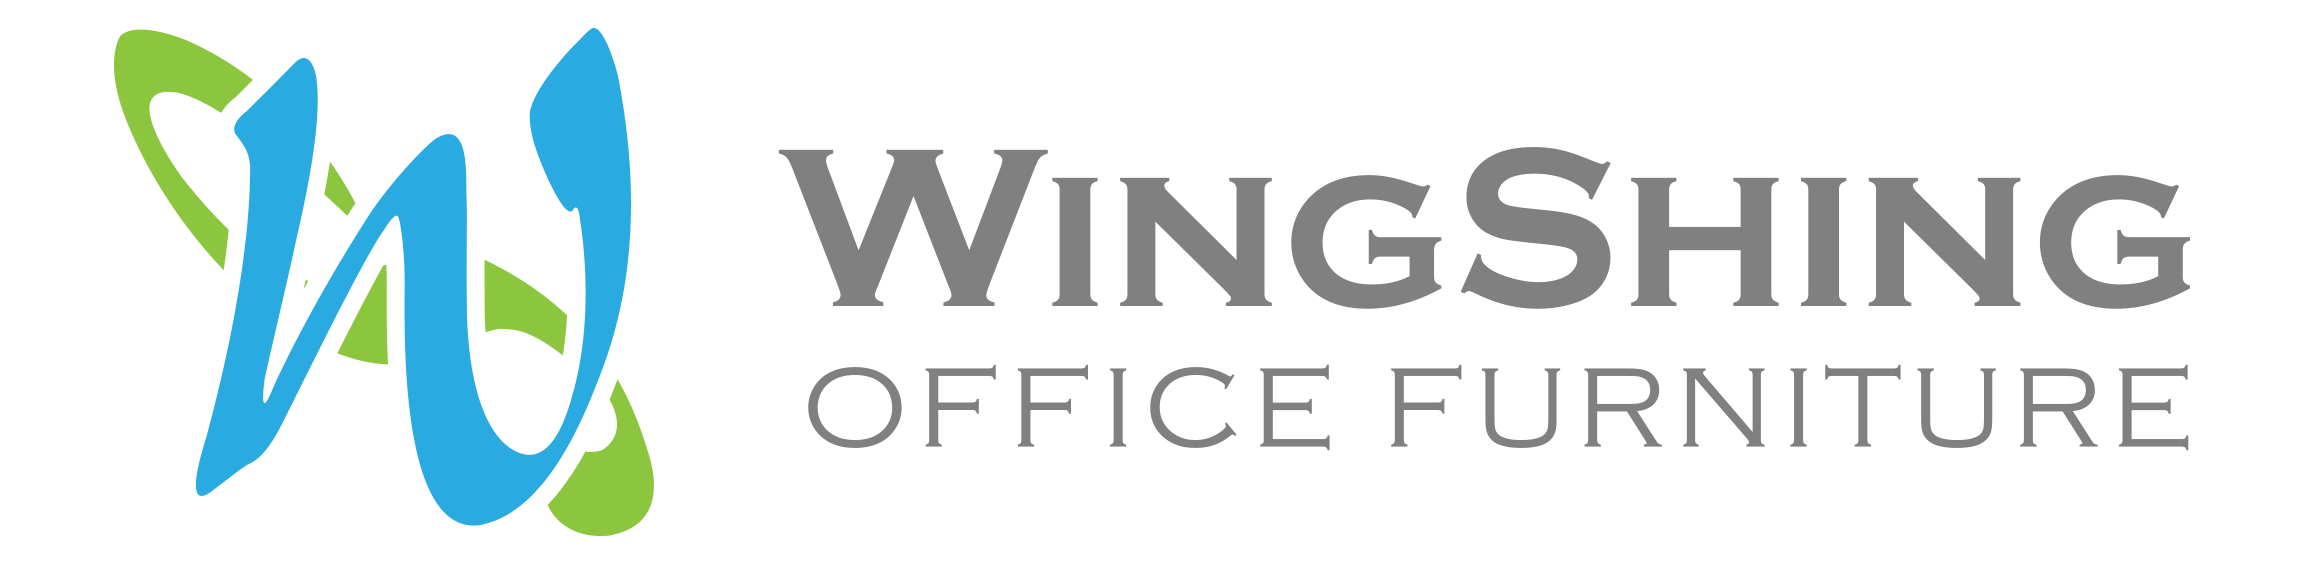 Wing Shing Office Furniture